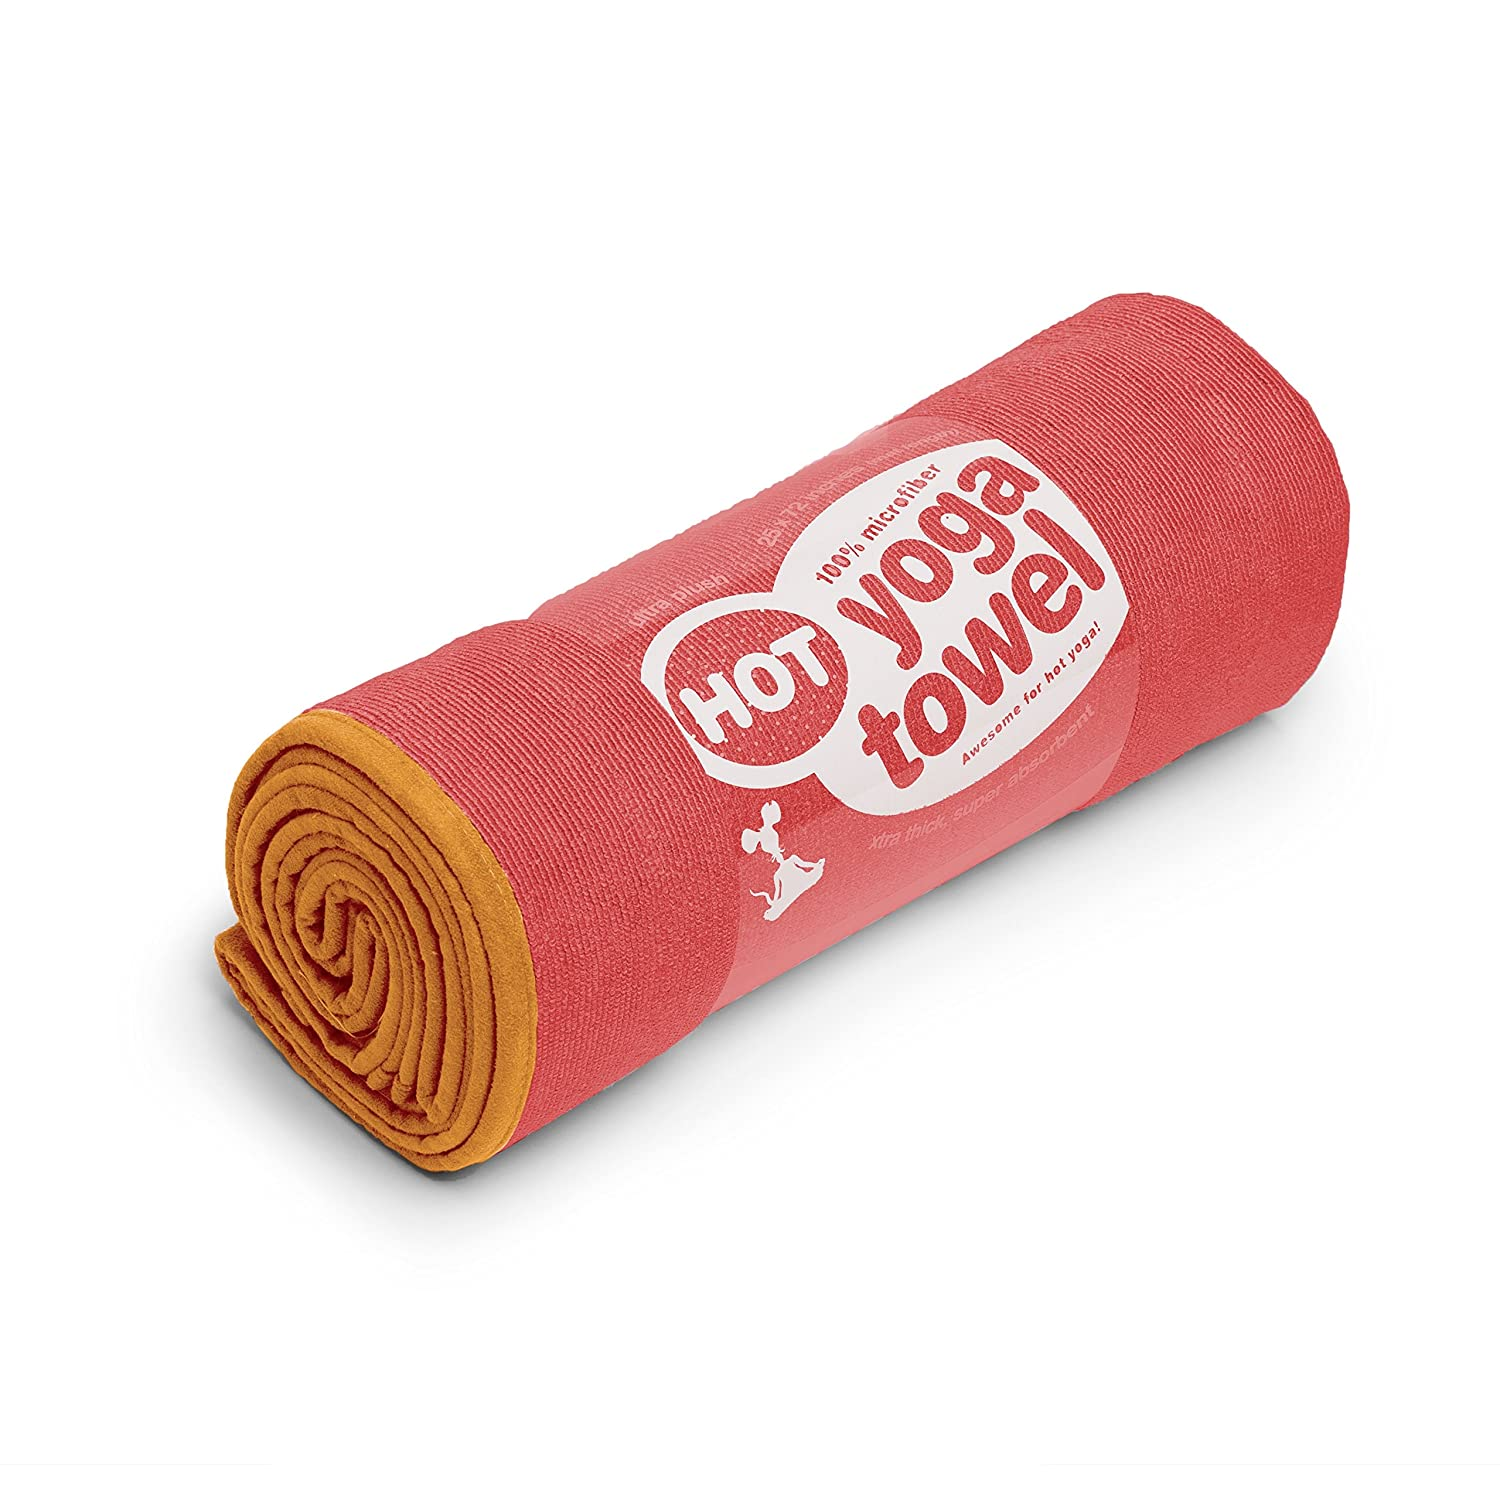 YogaRat HOT YOGA TOWEL: 100% durable, thick, super-absorbent microfiber. Offered in multiple mat-length sizes (26x72, 25 x 72 or 24 x 68) to lay on top of your yoga mat, for better grip and moisture absorption, and a hand-size towel (16 x 25, sold separate